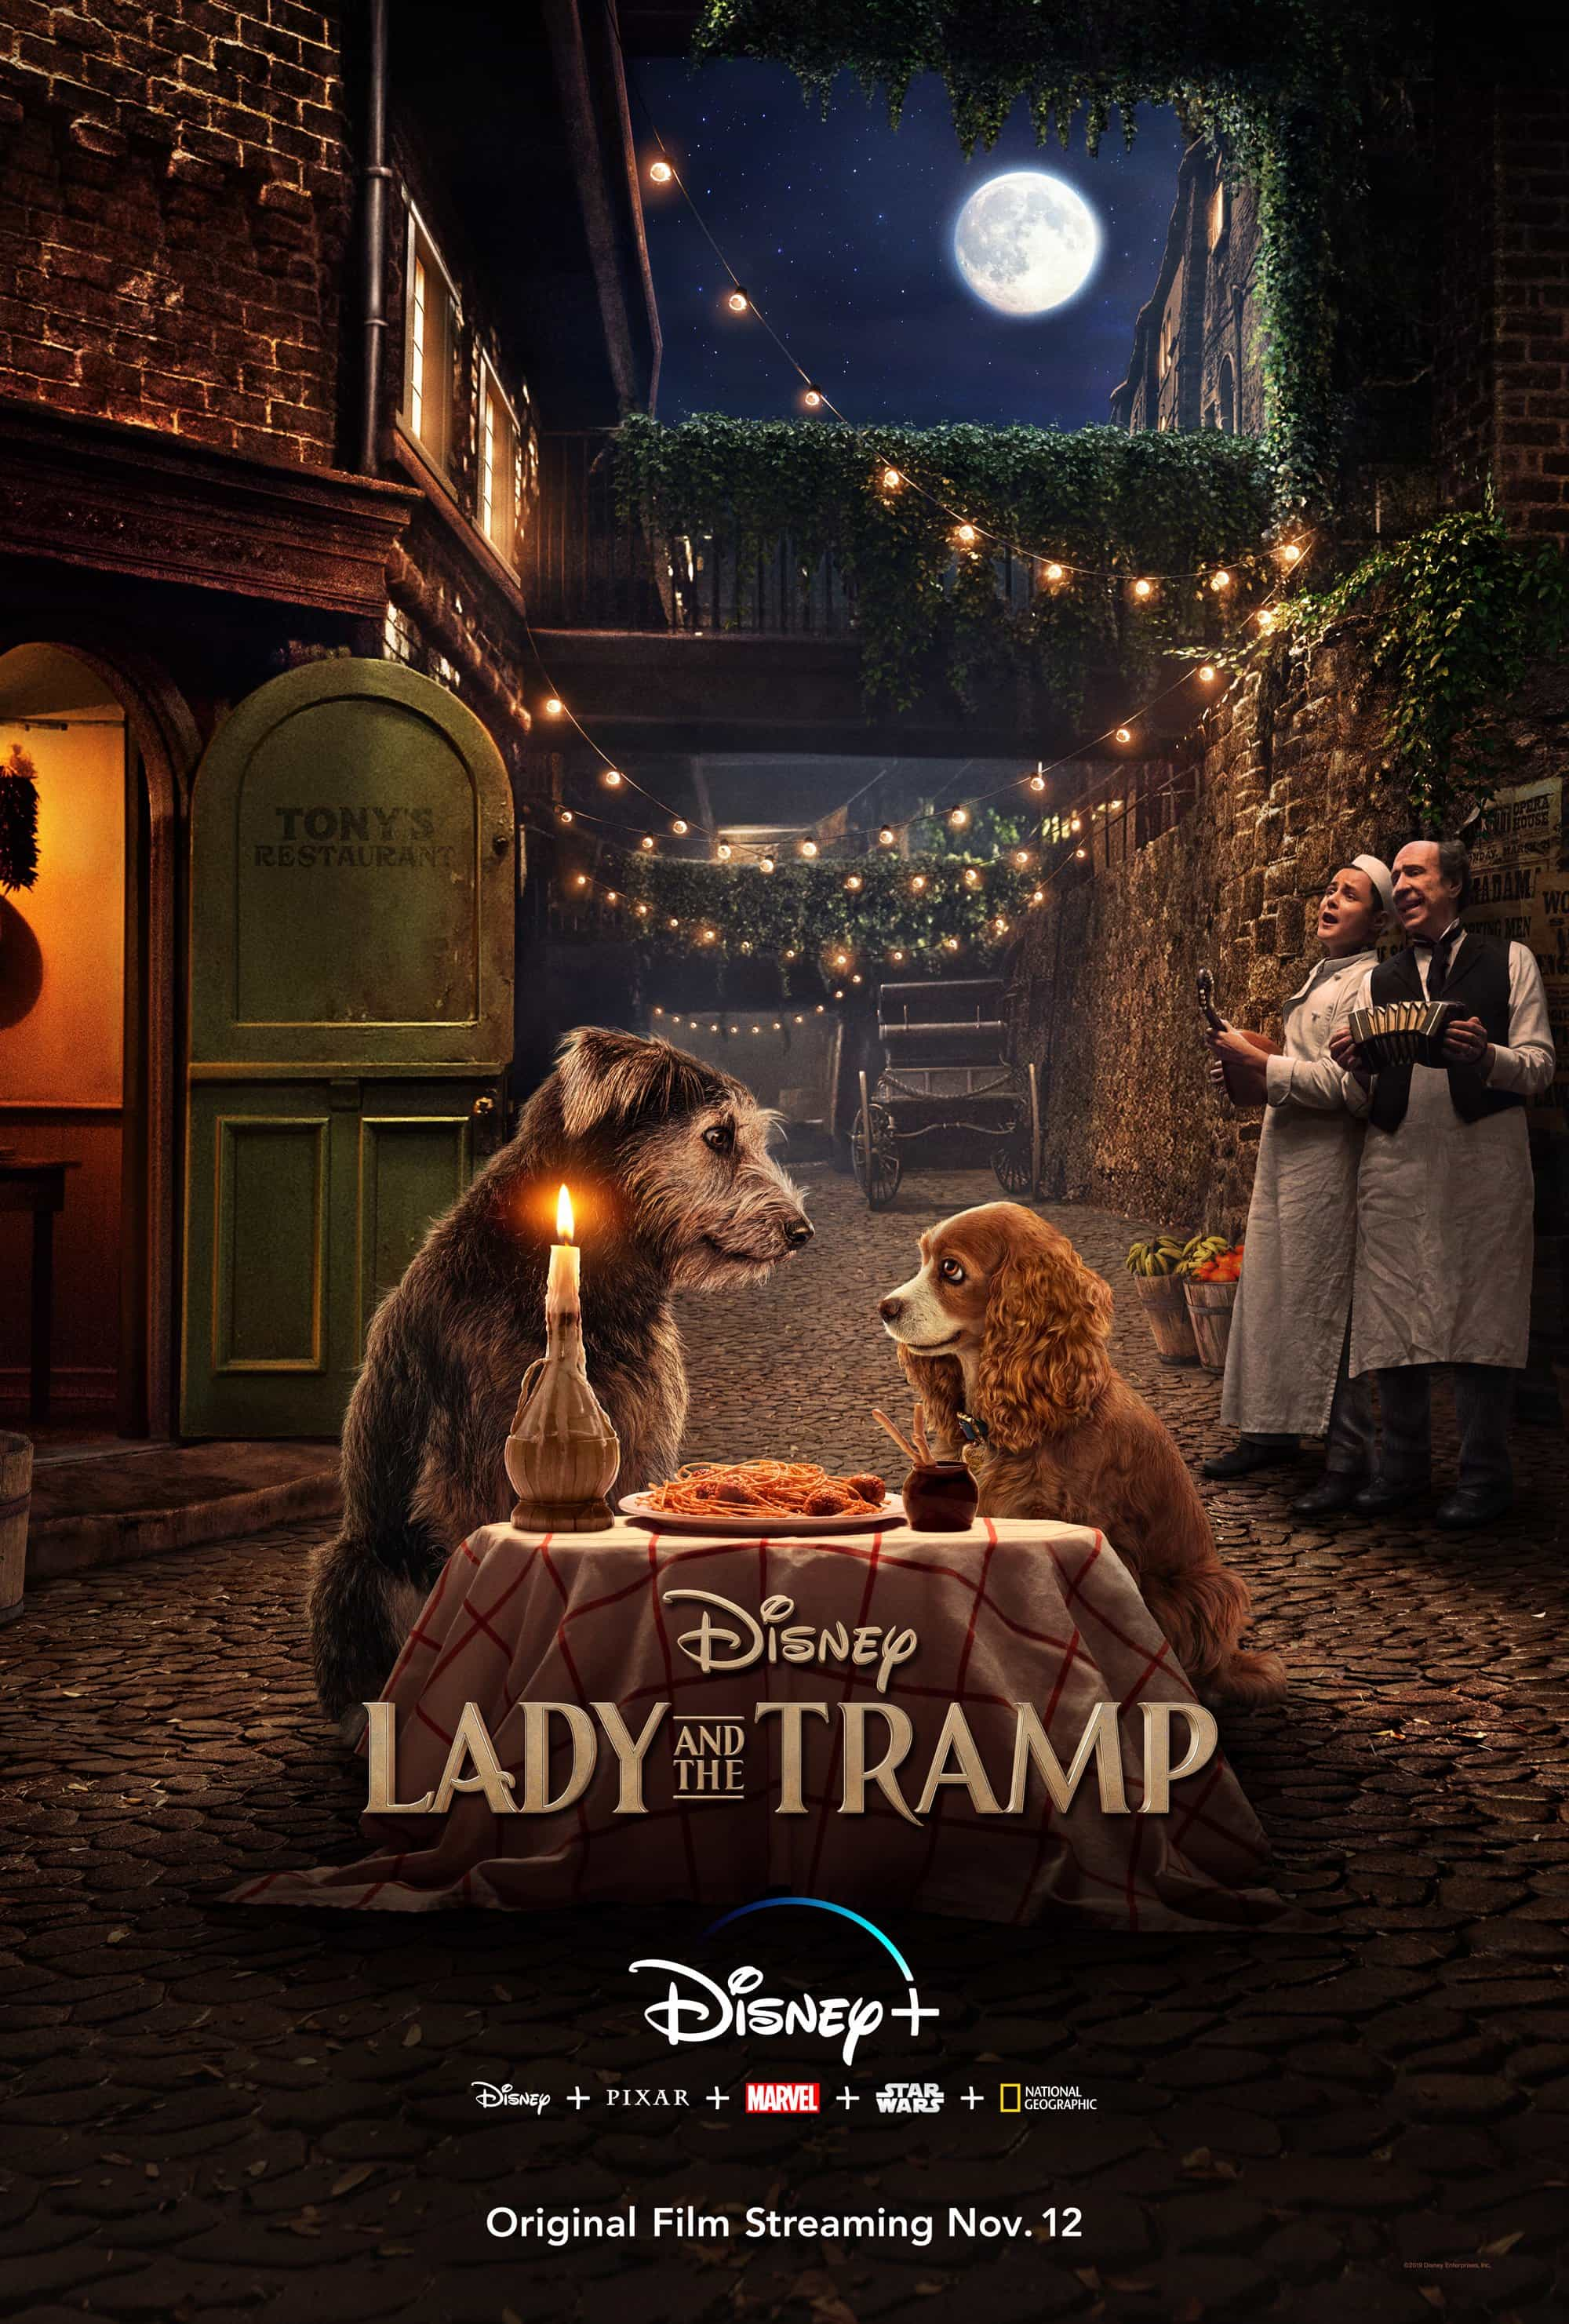 D23:  Disney release a poster for the remake of Lady And The Tramp - streaming on Disney+ November 12